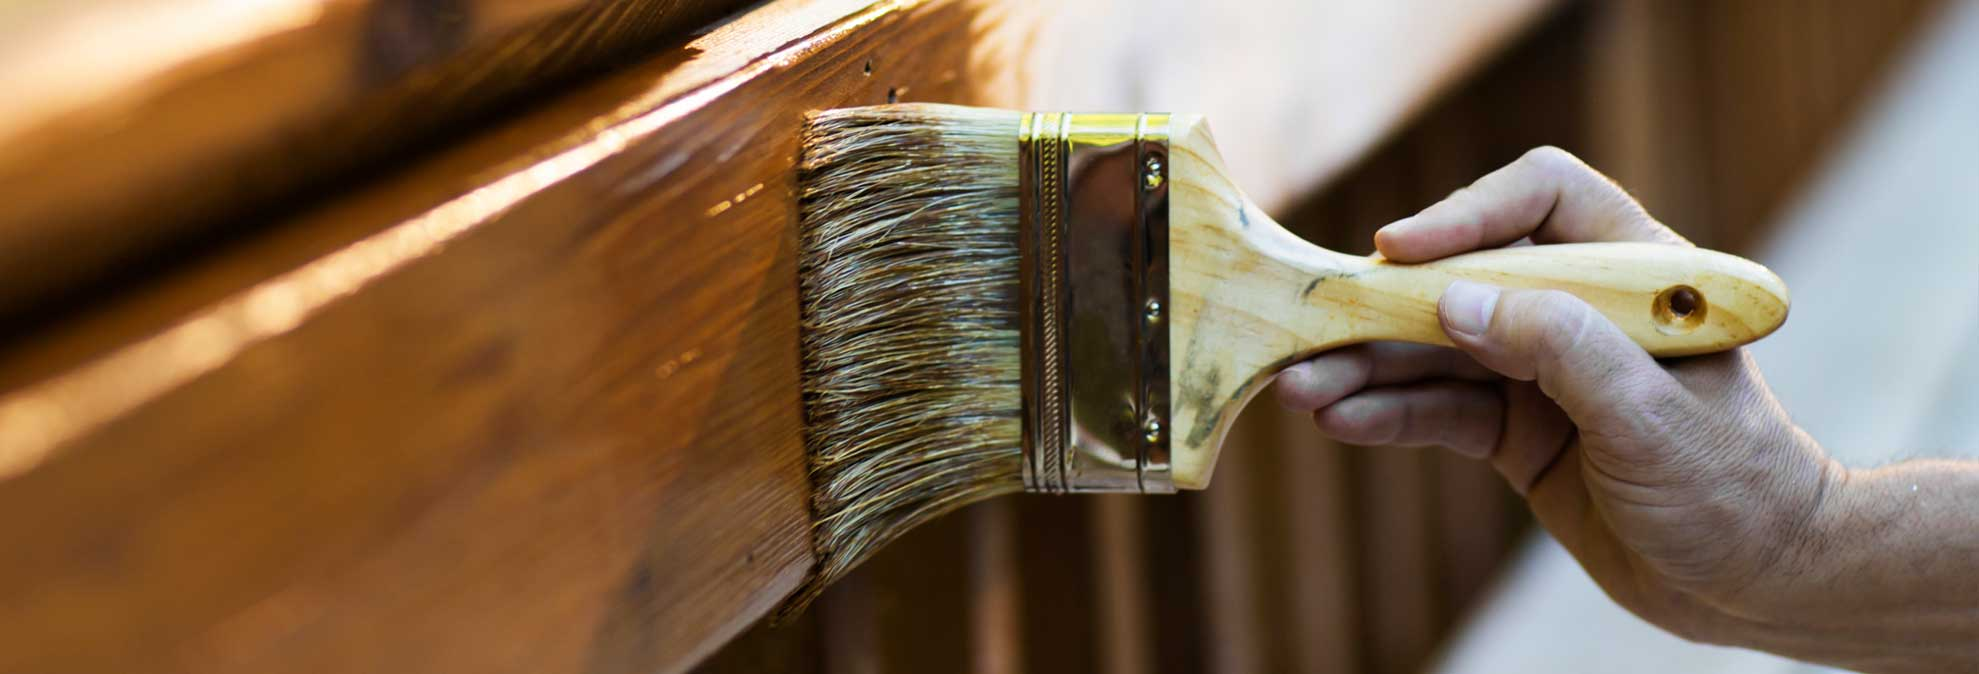 Best Wood Stain Reviews Consumer Reports